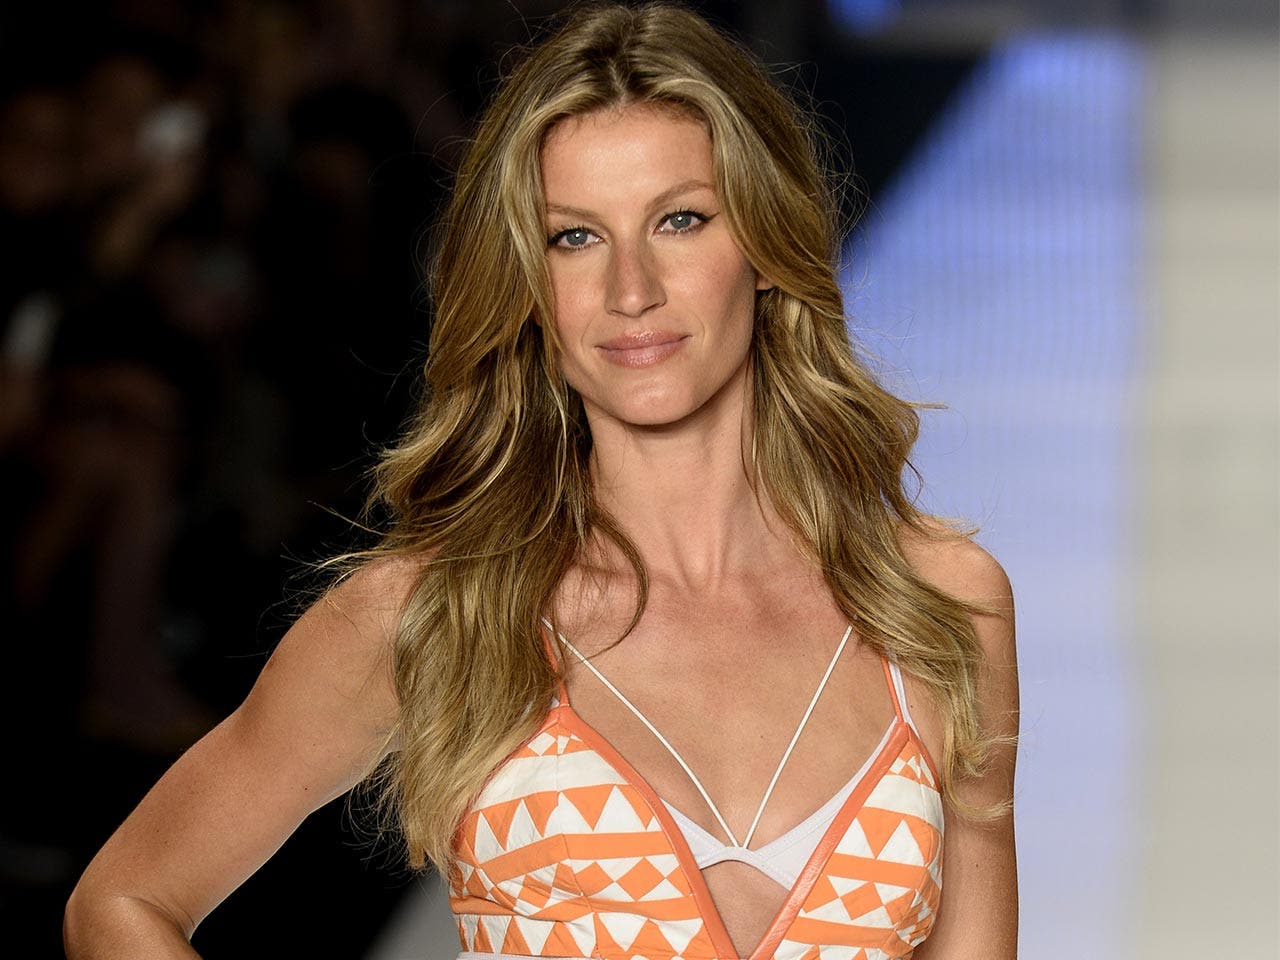 11 Of The World's Richest Supermodels | Bankrate com